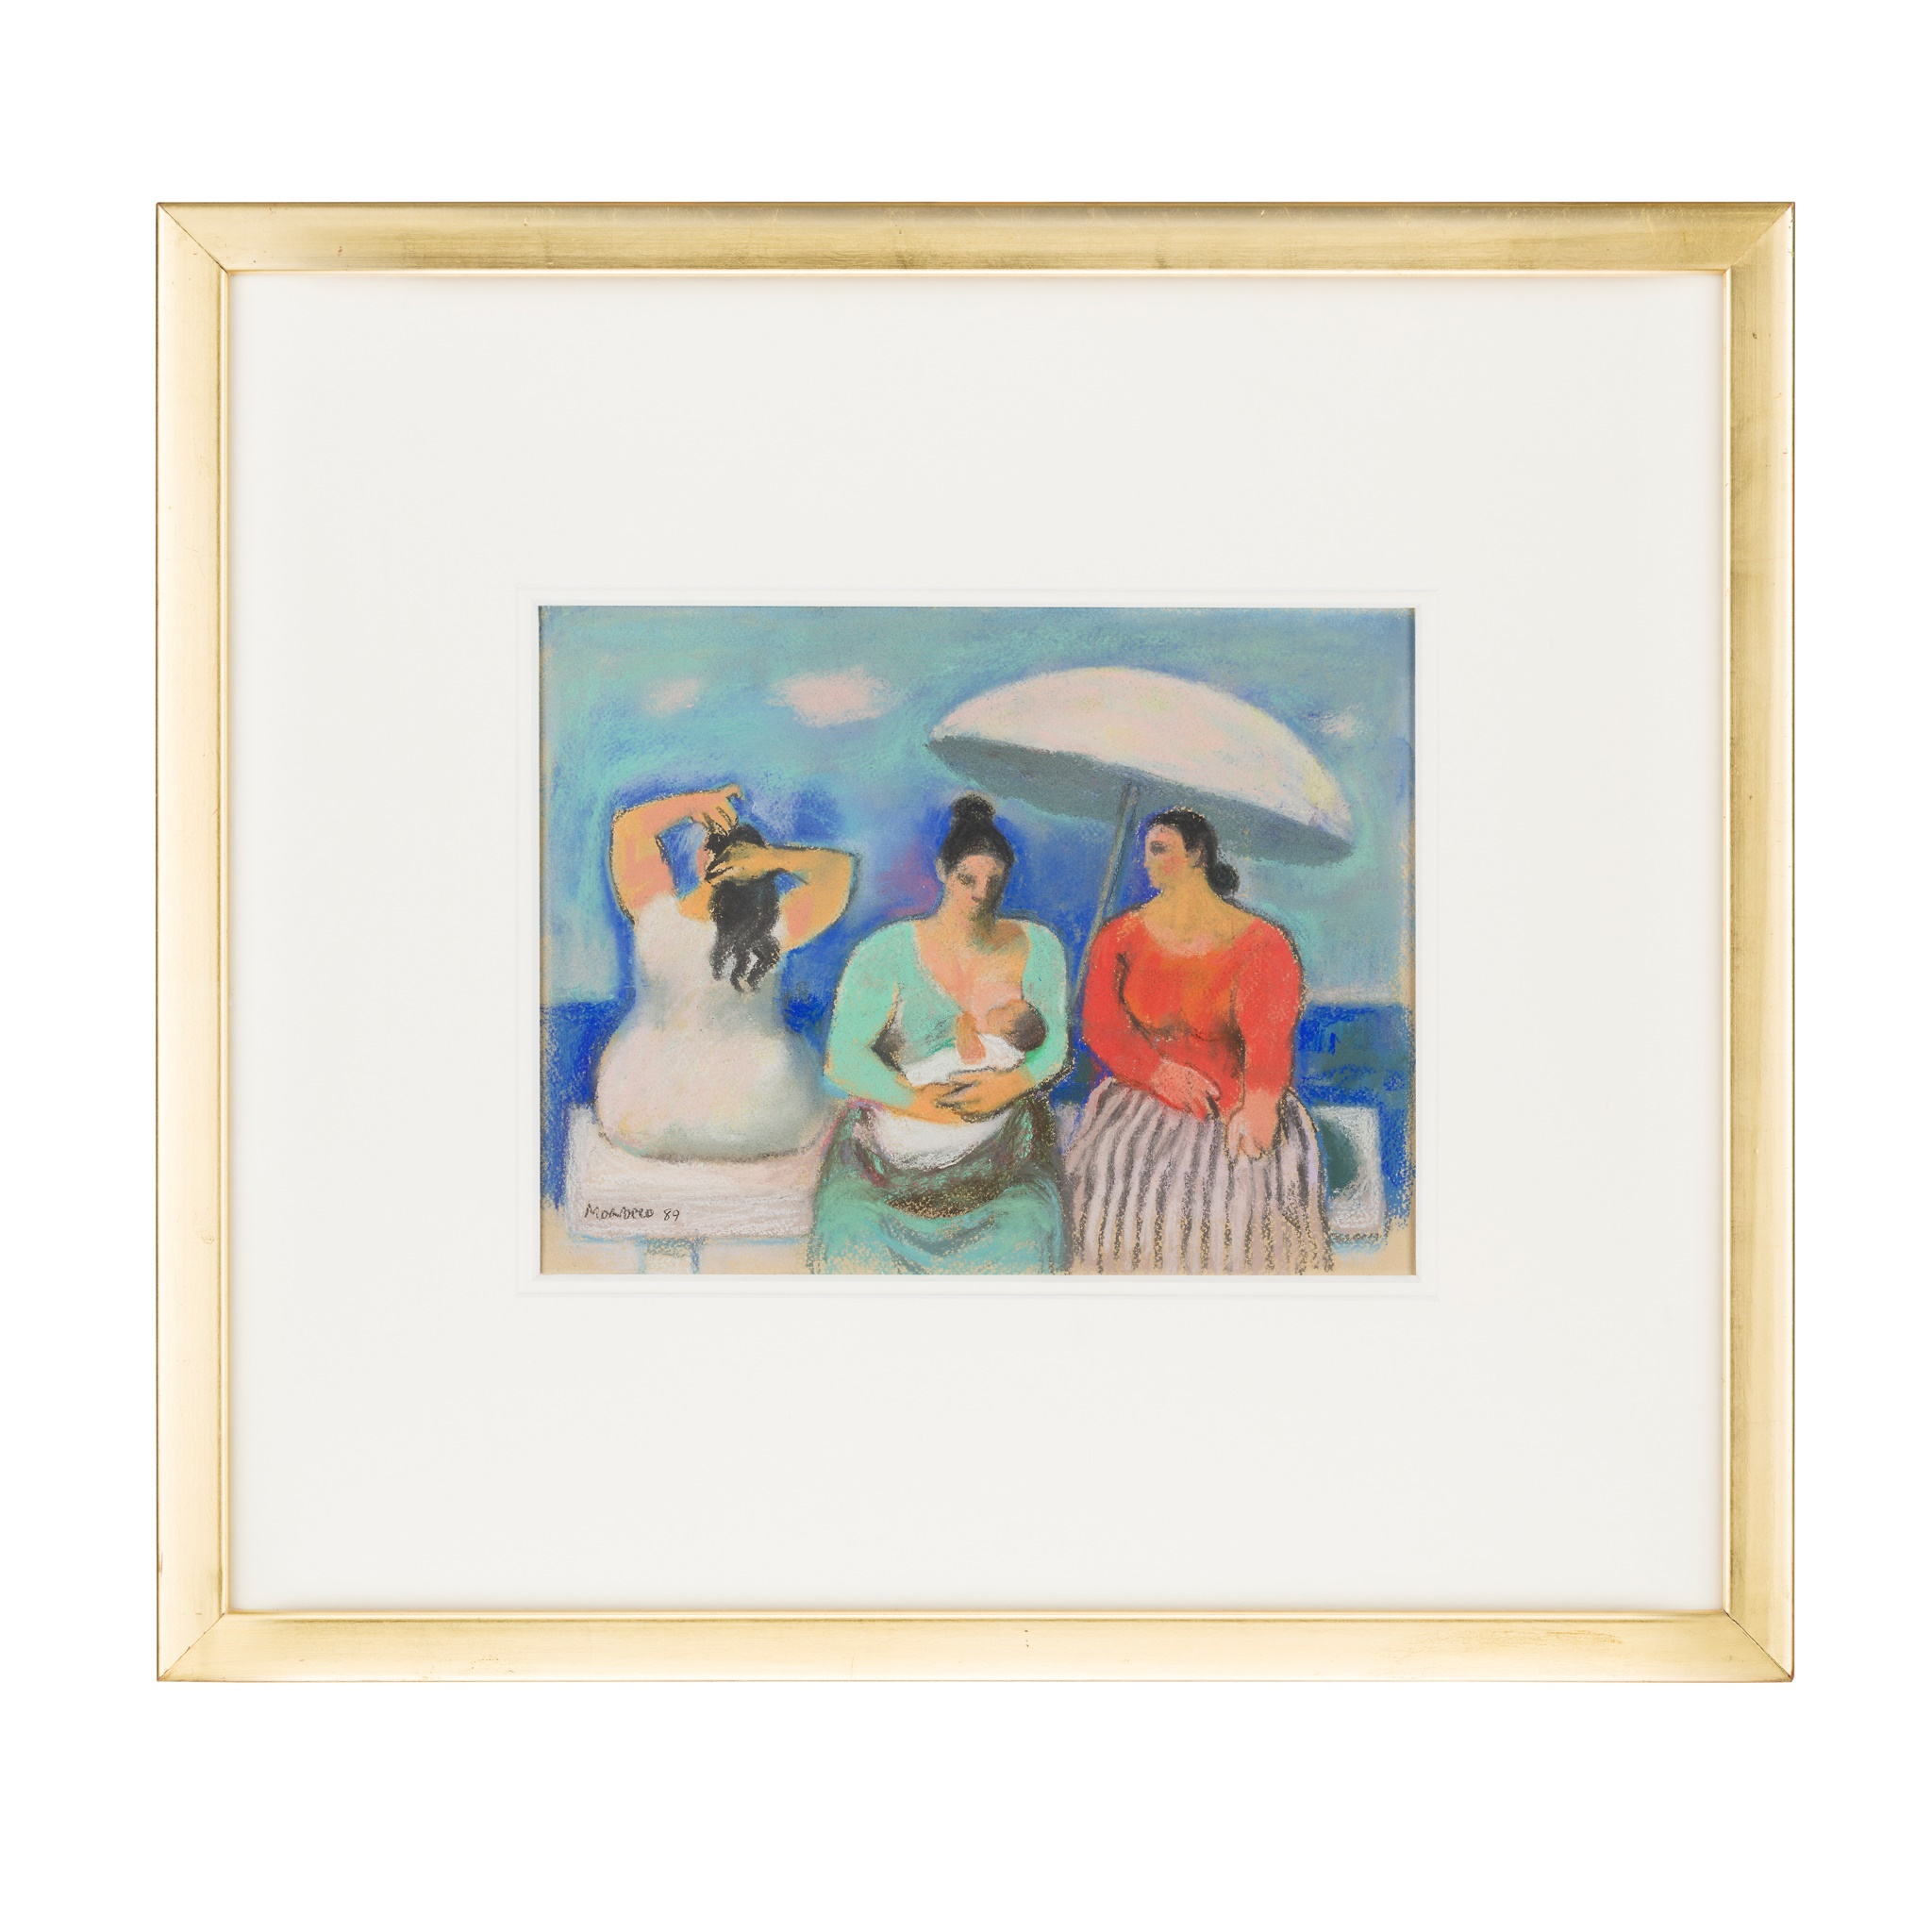 § ALBERTO MORROCCO R.S.A., R.S.W., R.P., R.G.I., L.L.D (SCOTTISH 1917-1999) THREE WOMEN BY THE SEA - Image 2 of 3